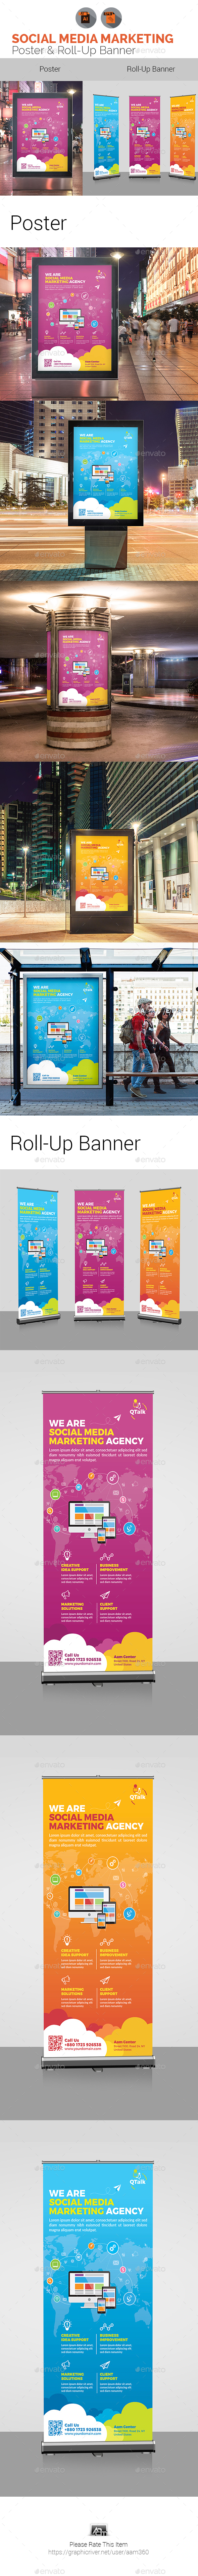 GraphicRiver Social Media Marketing Poster & Roll-Up Bundle 20919297